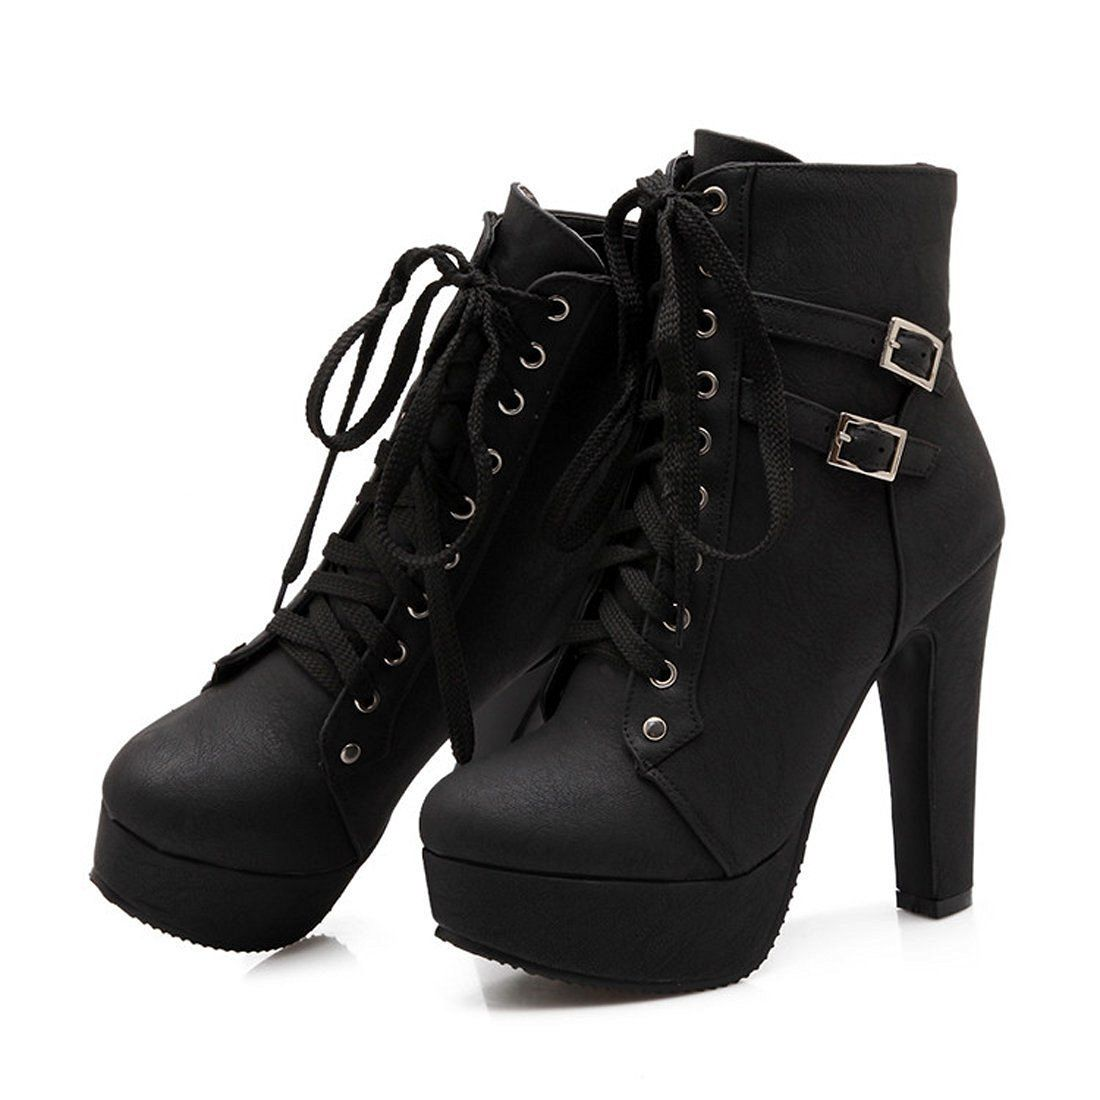 Women's Stylish Casual Round Toe Lace Up High Tops Low Heels Ankle Martin Boots Shoes